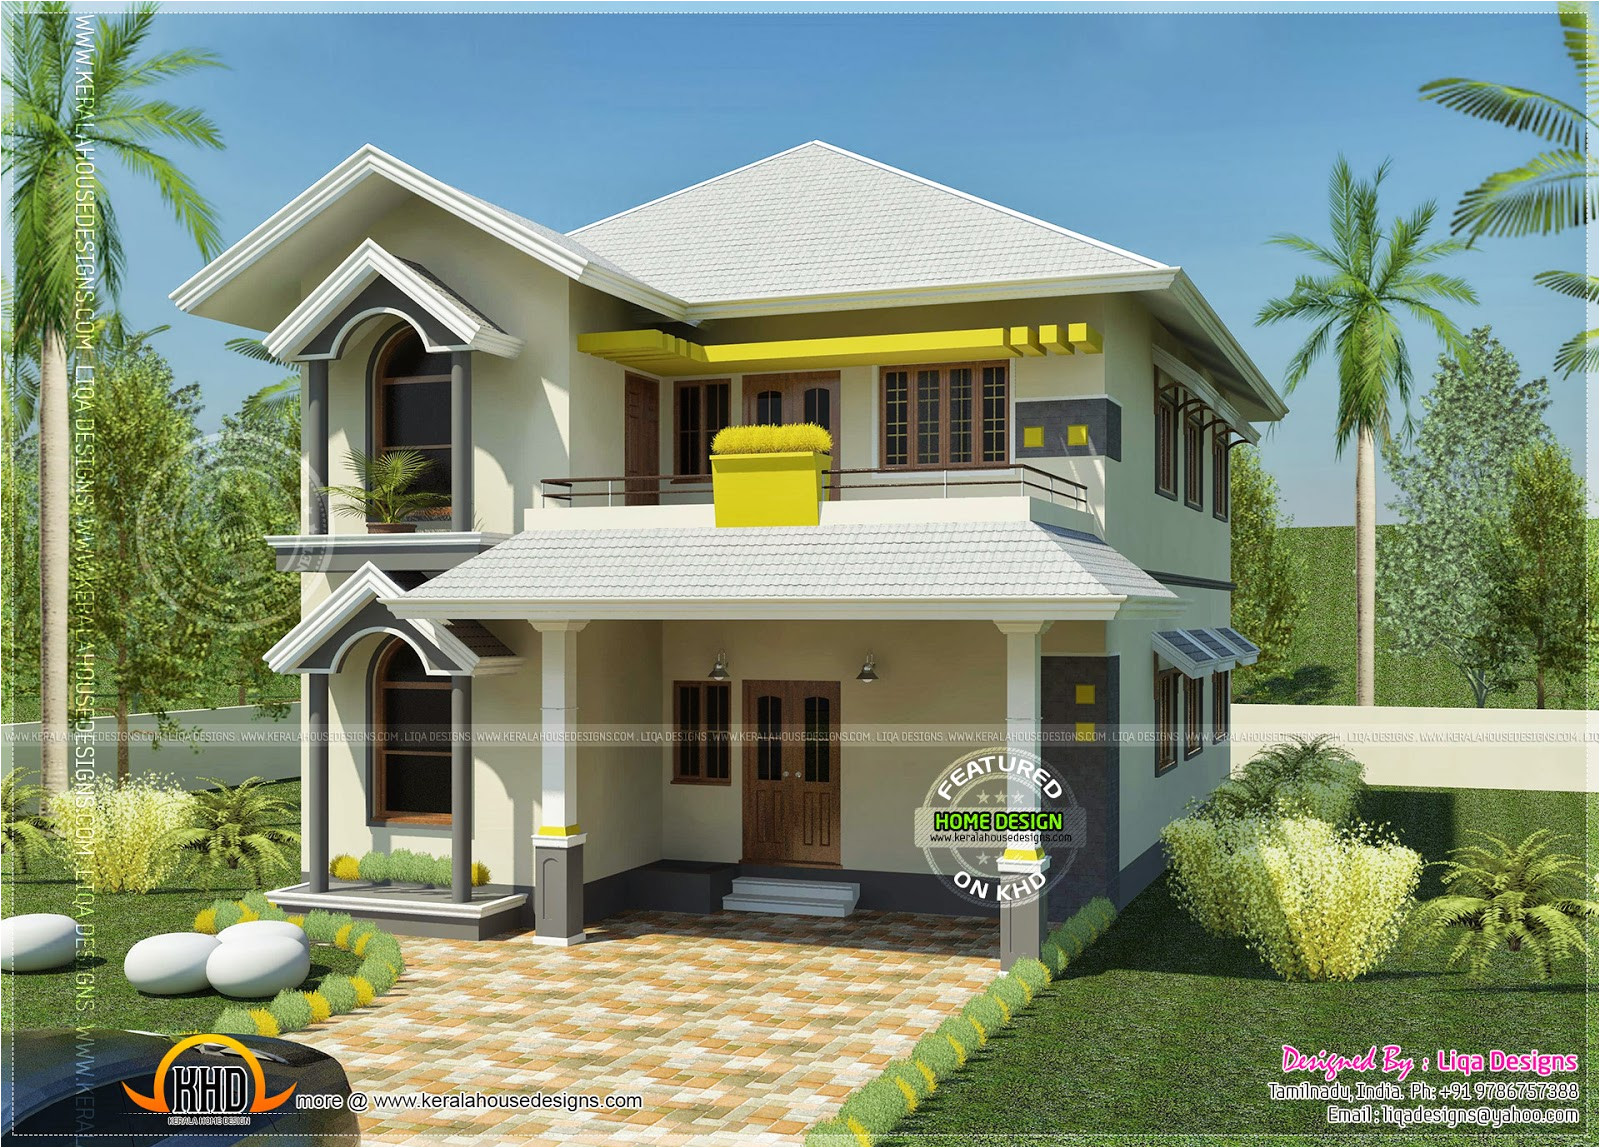 South Indian Home Plans and Designs House south Indian Style In 2378 Square Feet Kerala Home